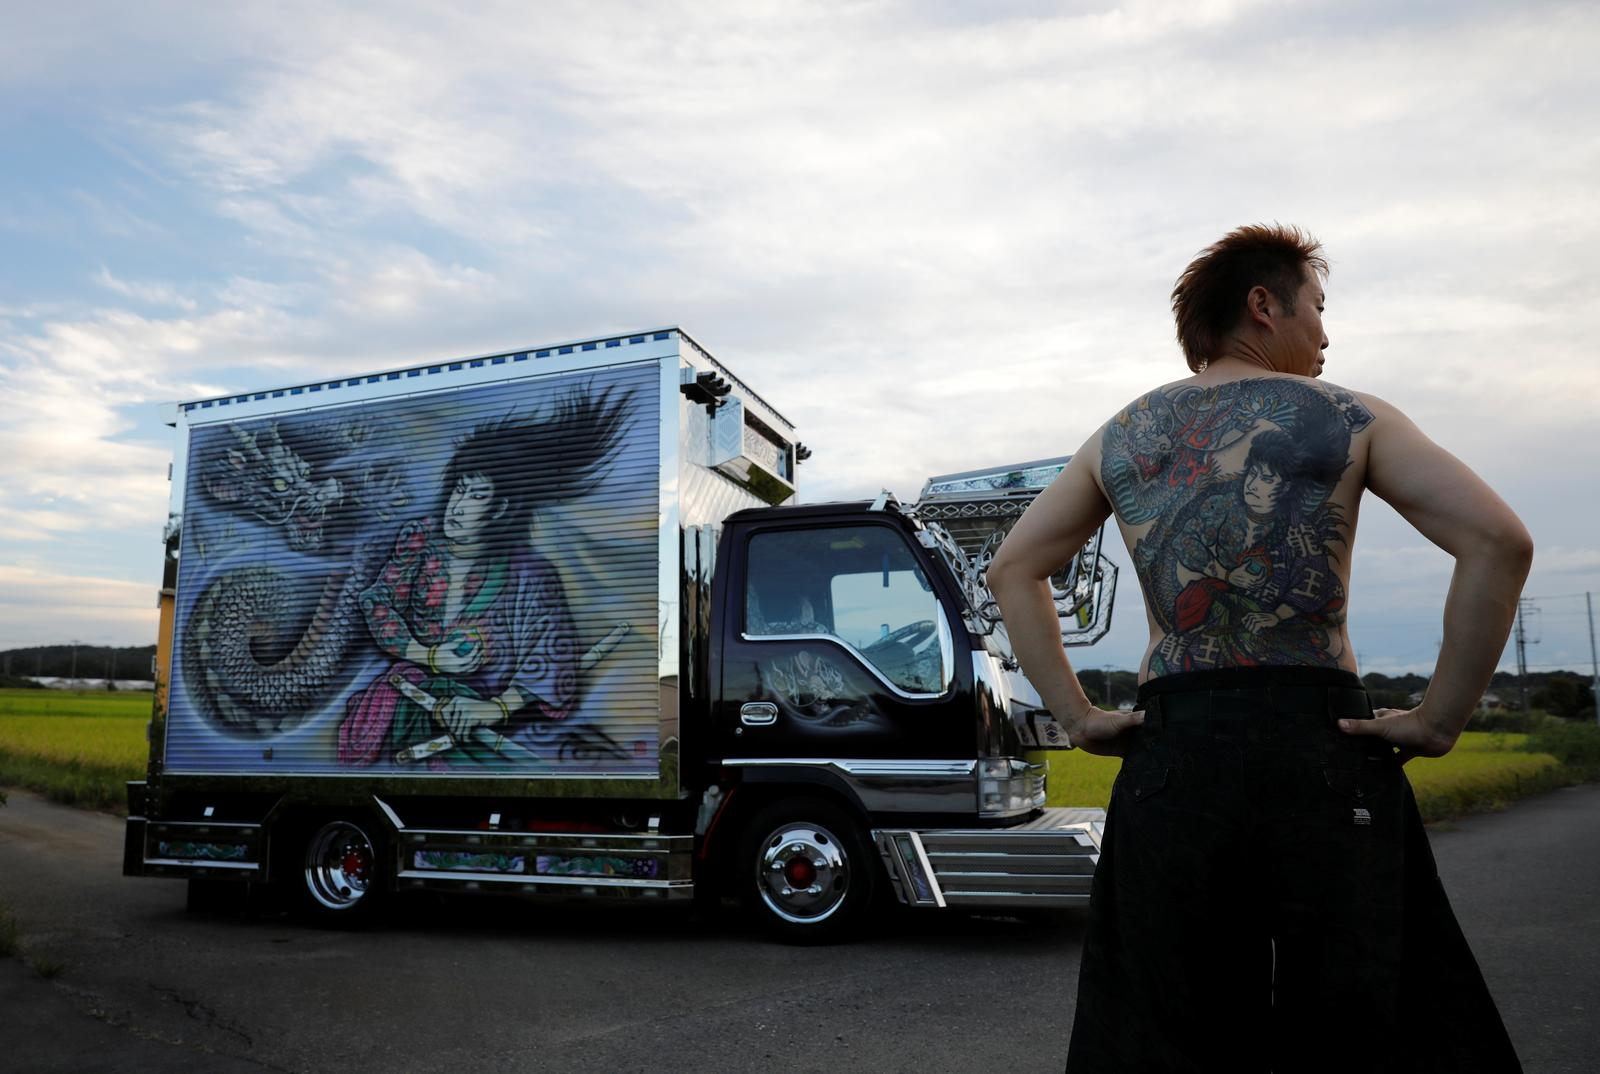 Truck driver Hideyuki Haga, 44, poses in front of his truck which is decorated with the same design as his tattoo on his back, in Hiki, Saitama, Japan, September 3, 2020. Photo: Reuters